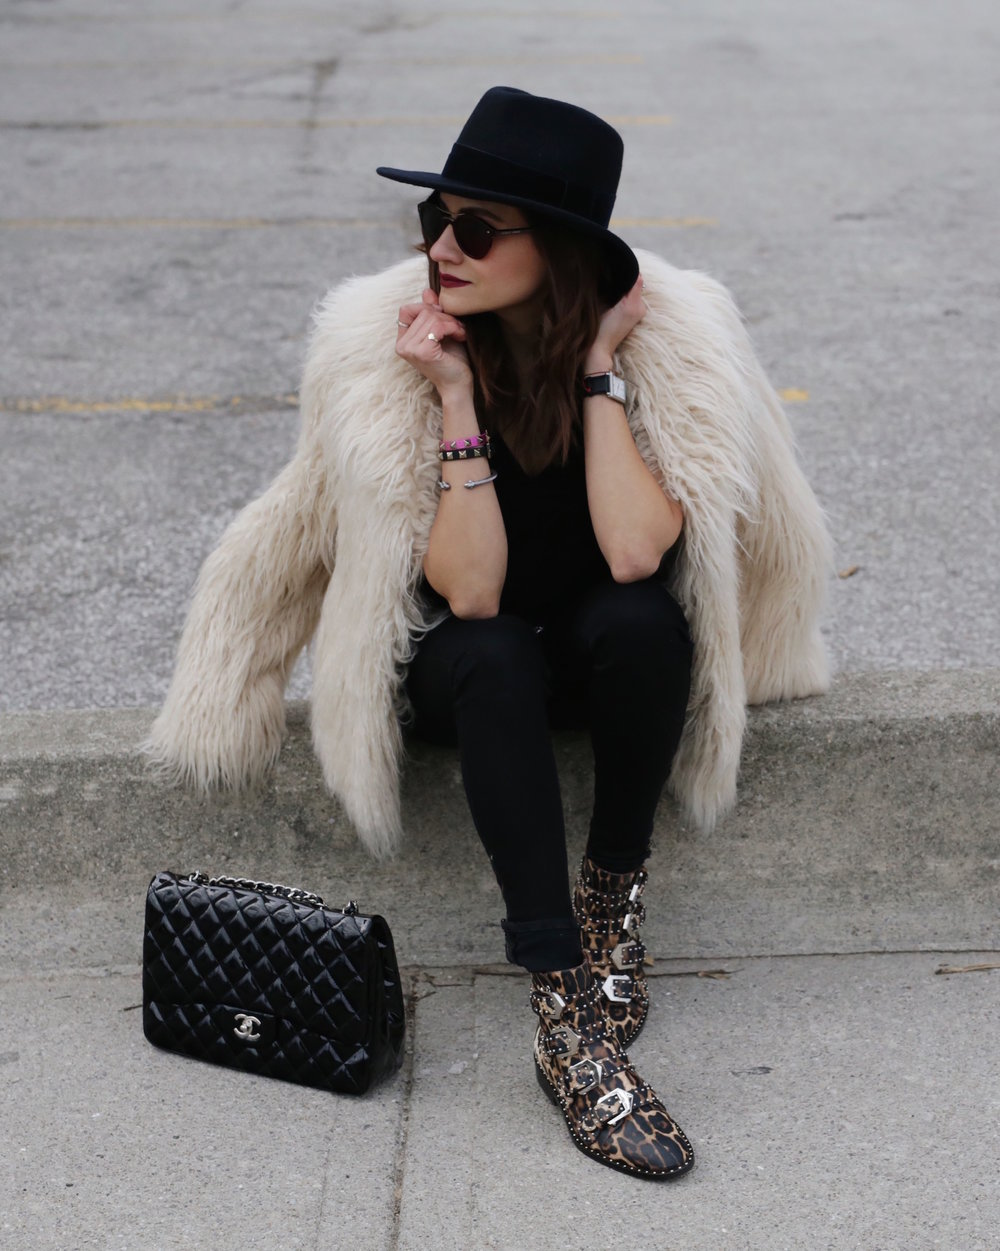 givenchy studded leopard boots, faux fur jacket and patent leather chanel bag - woahstyle.com_5628.JPG